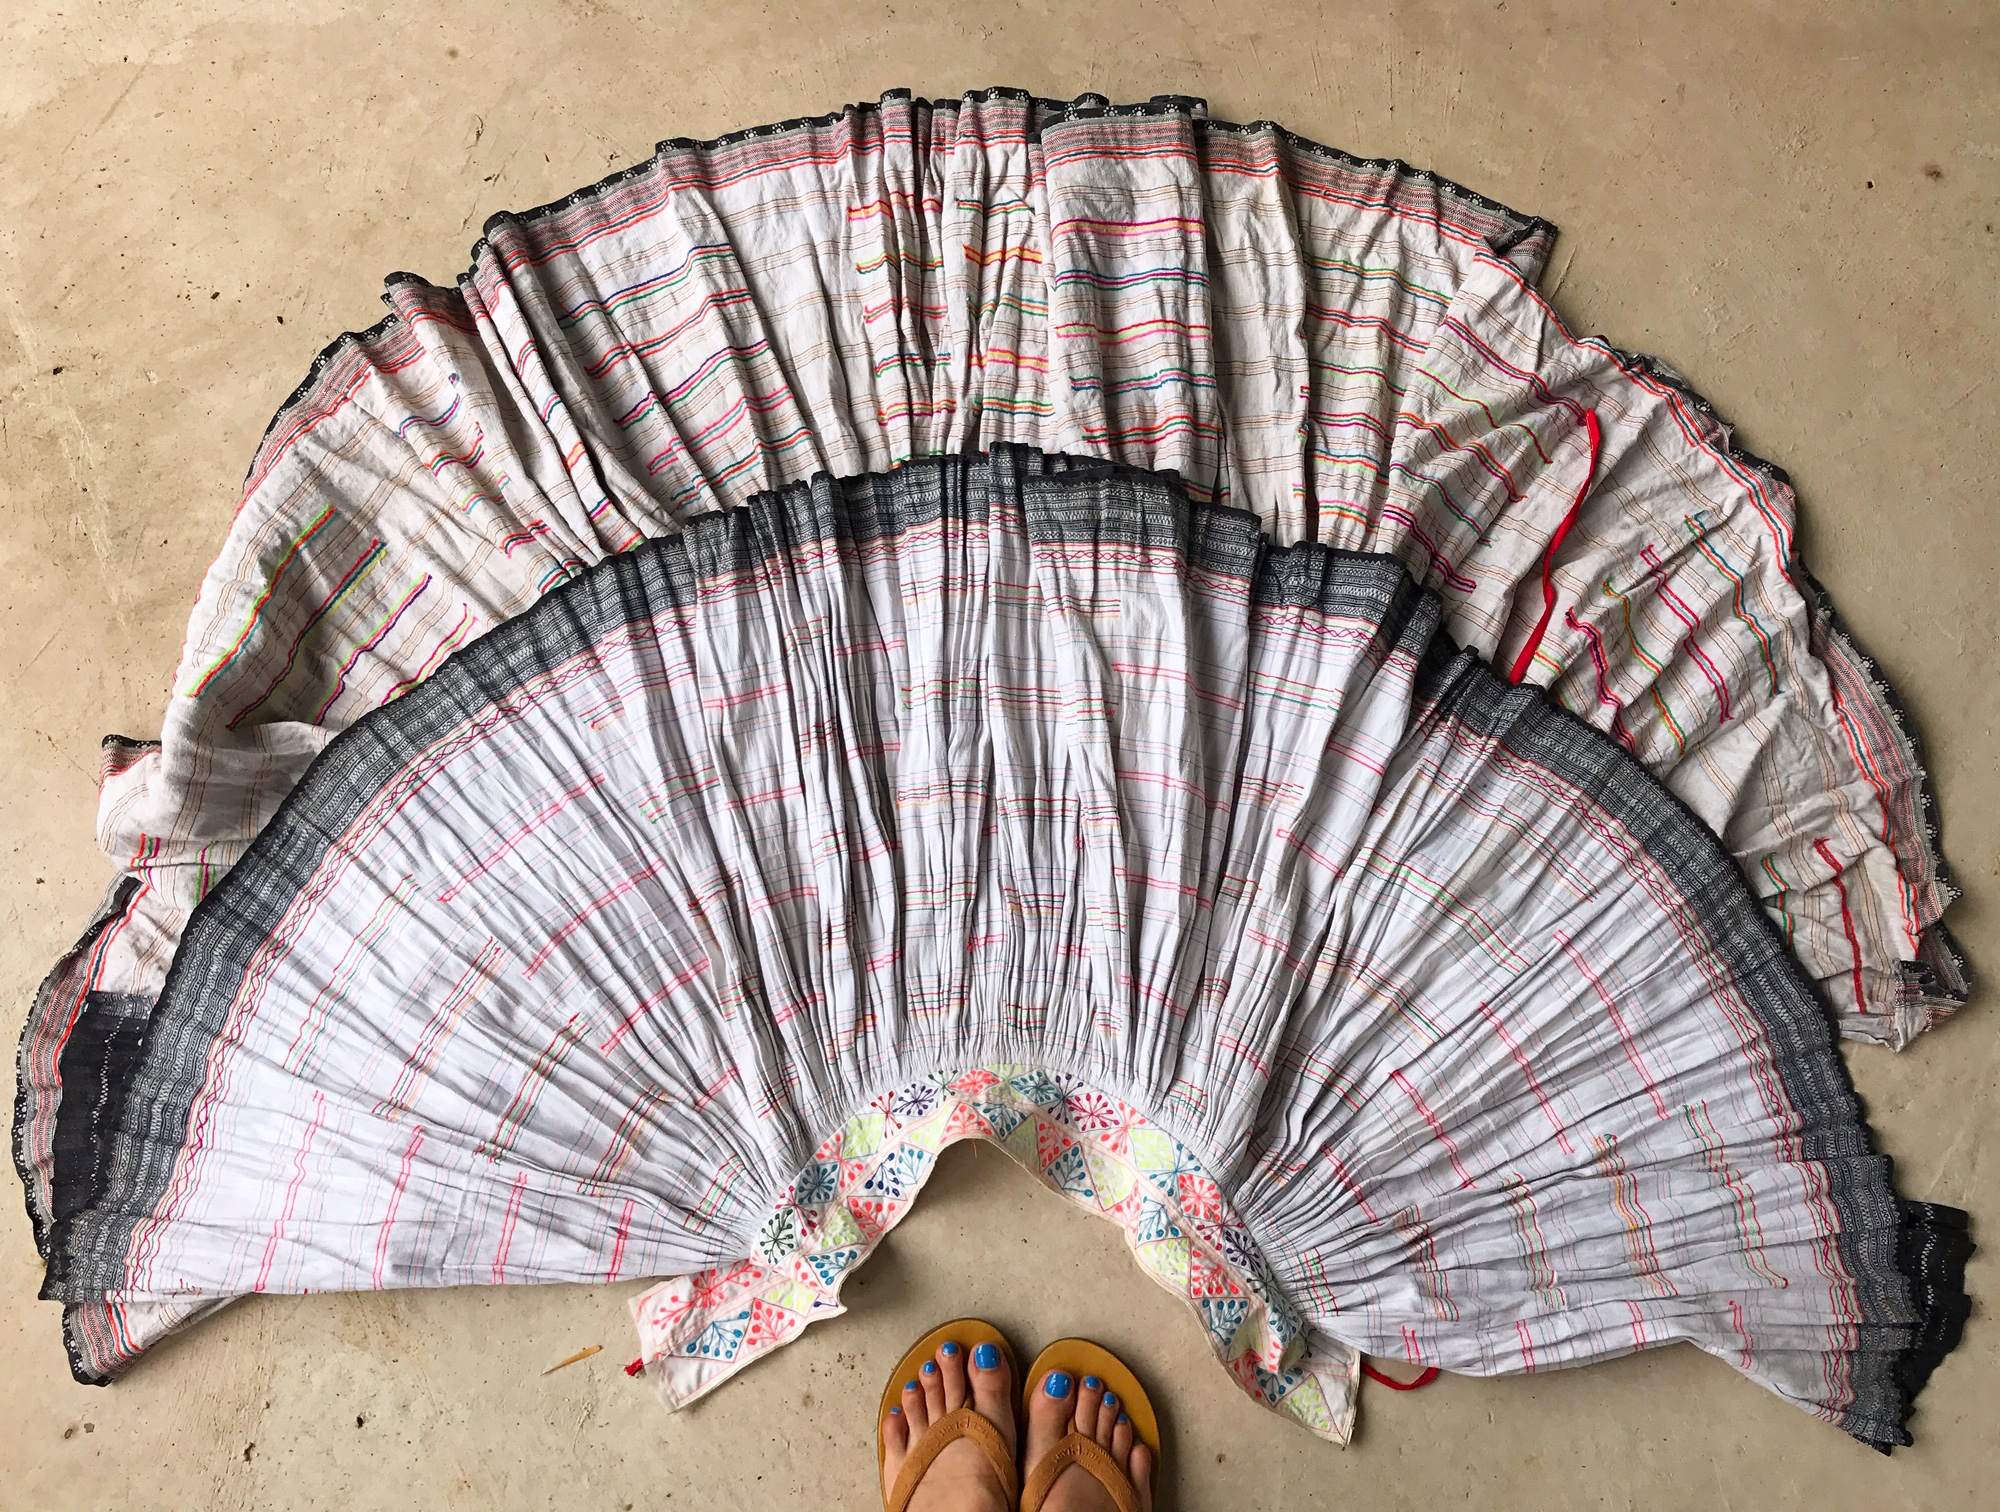 Vintage Hmong skirts made from handwoven hemp, also featuring hand embroidery, pin stripe applique and batik dyeing. I love the pastel pinks, yellow and blues on these skirts, the colors which made their way into the Thai Flower slip ons in pink.